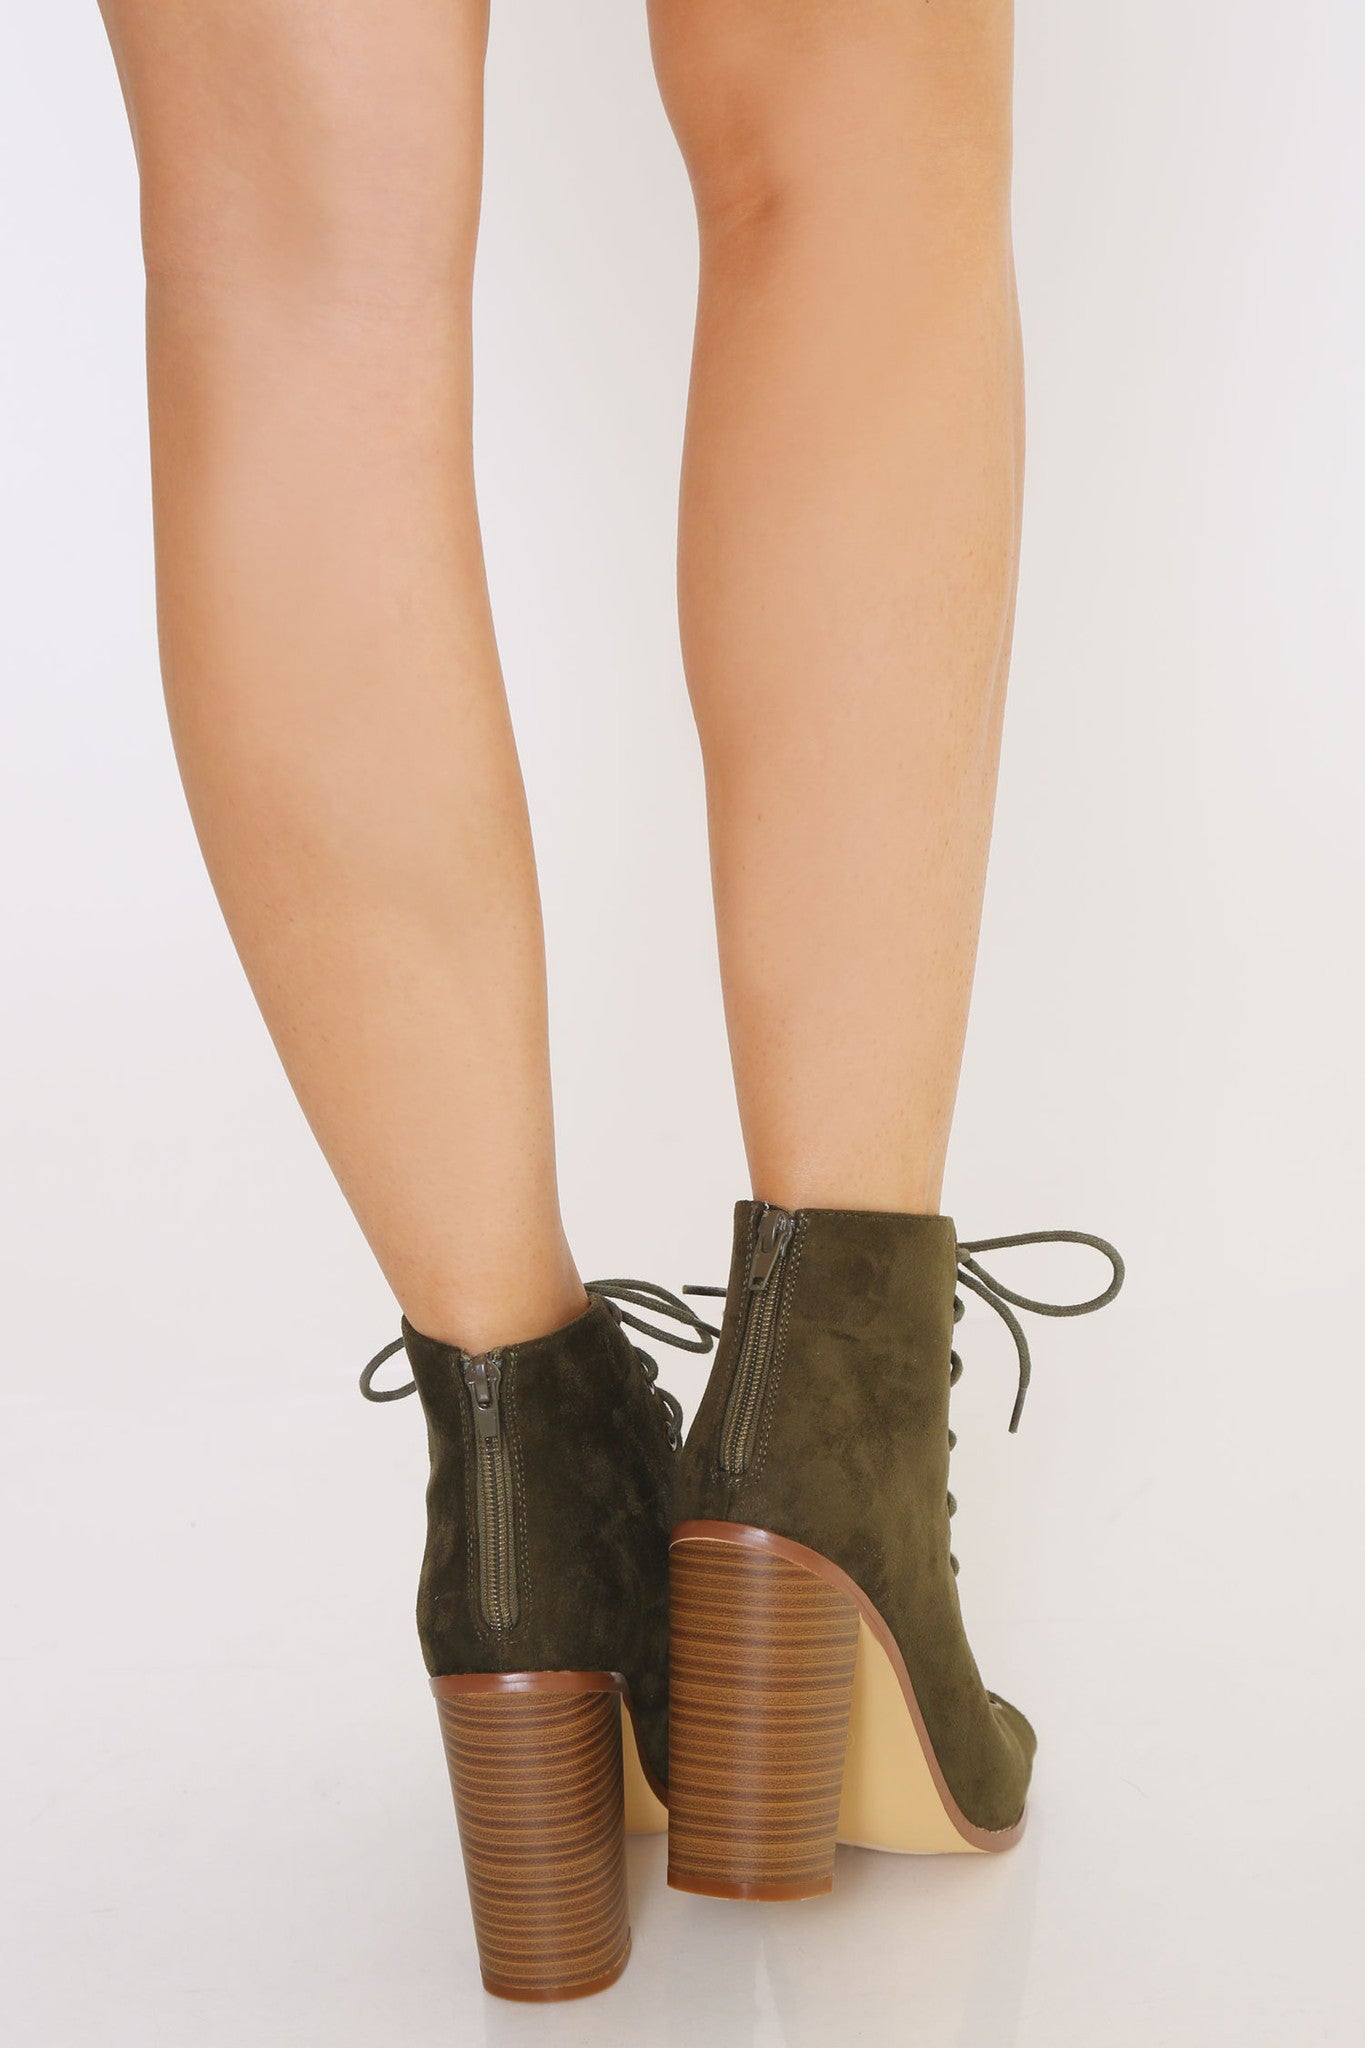 SHEELA LACE UP BOOTIES - Glam Envy - 3